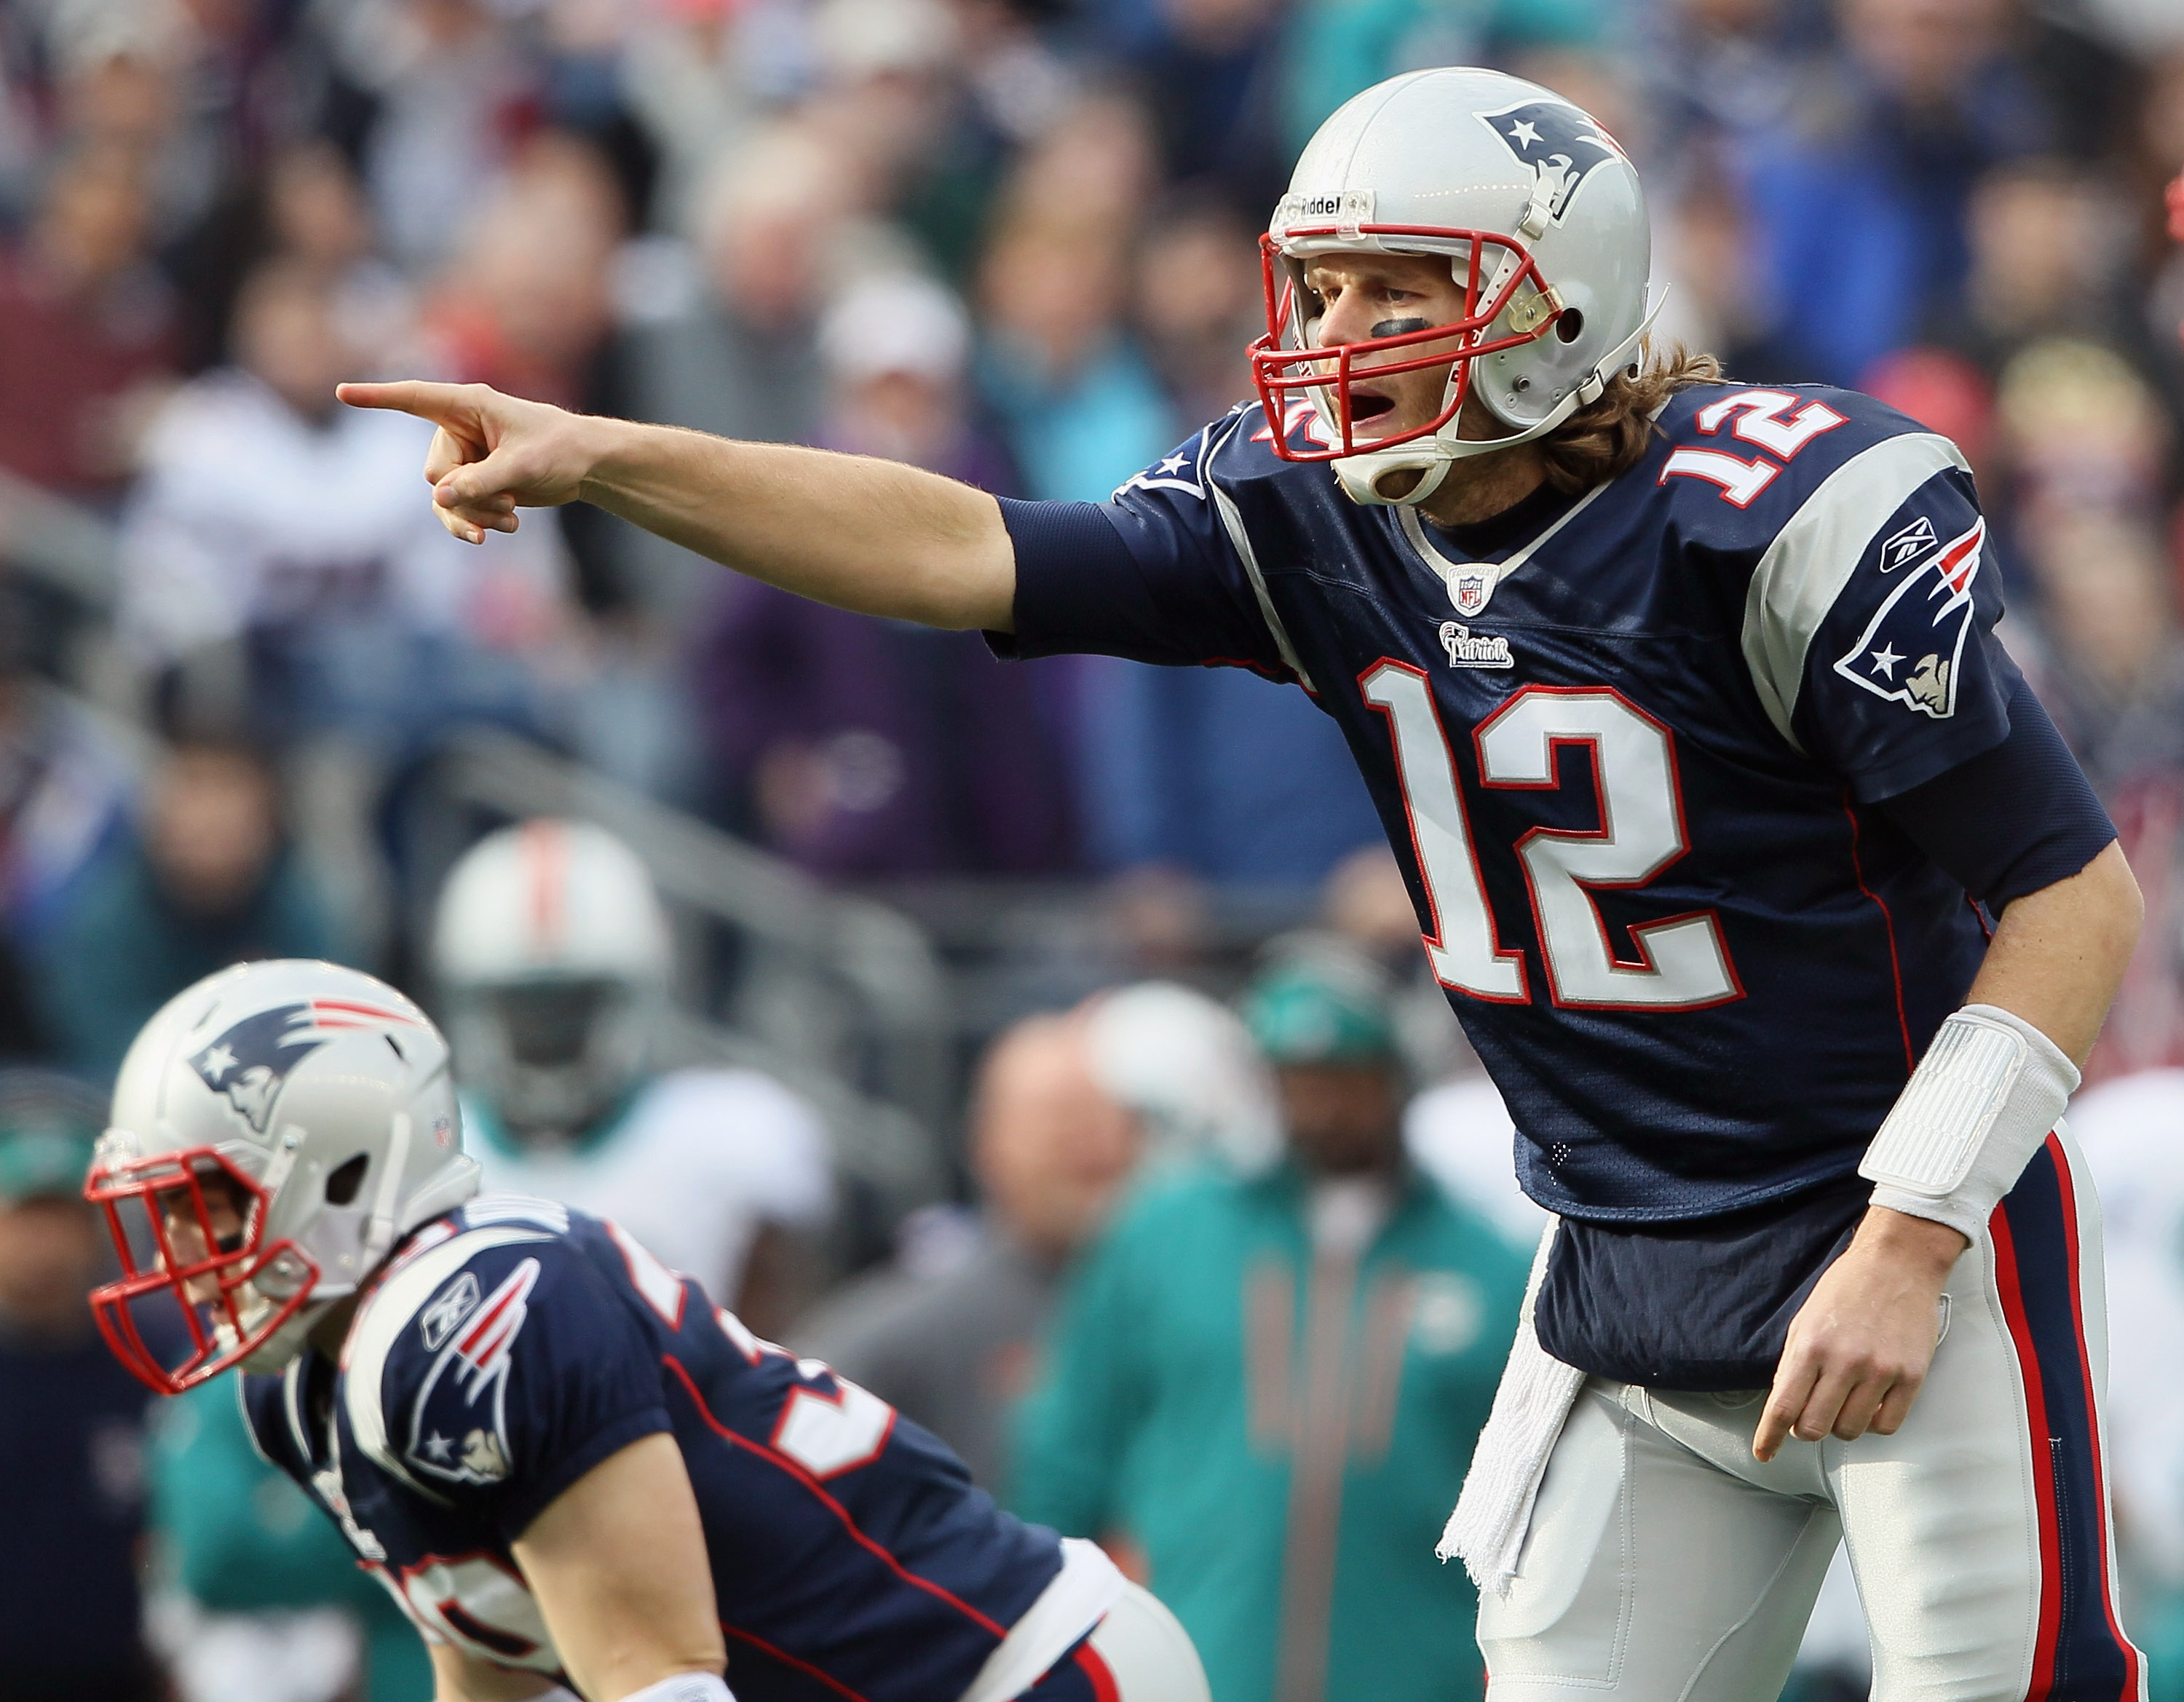 FOXBORO, MA - JANUARY 02:  Tom Brady #12 of the New England Patriots calls out the play in the first half against the Miami Dolphins on January 2, 2011 at Gillette Stadium in Foxboro, Massachusetts.  (Photo by Elsa/Getty Images)